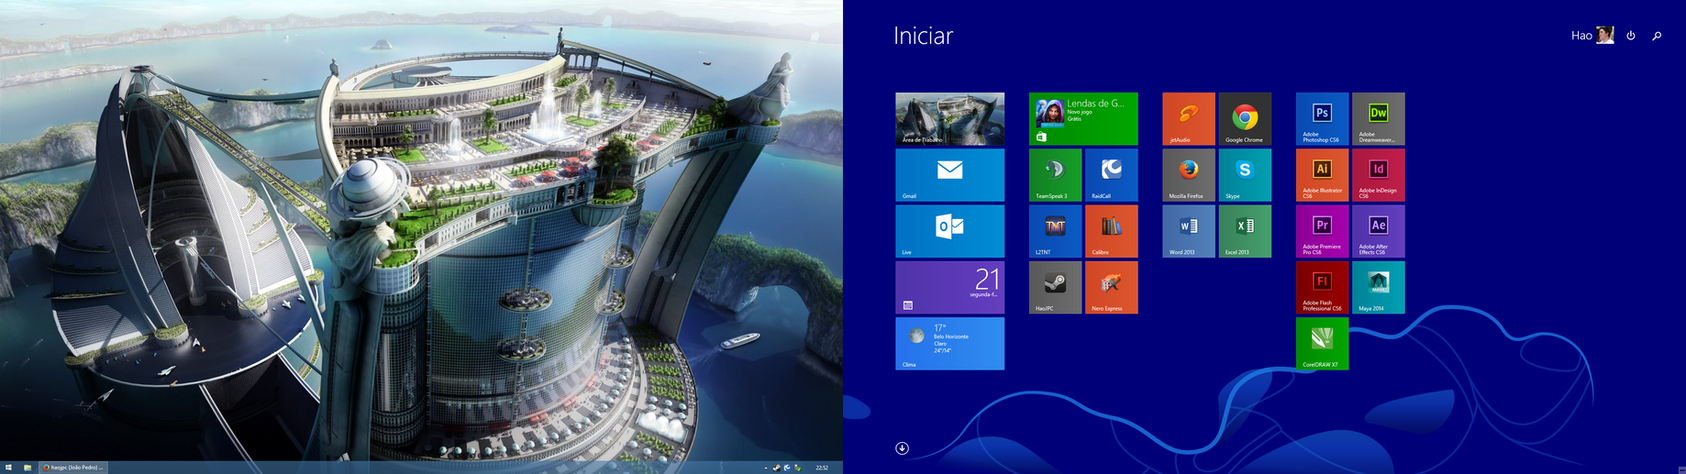 Desktop July 2014 by haojpc